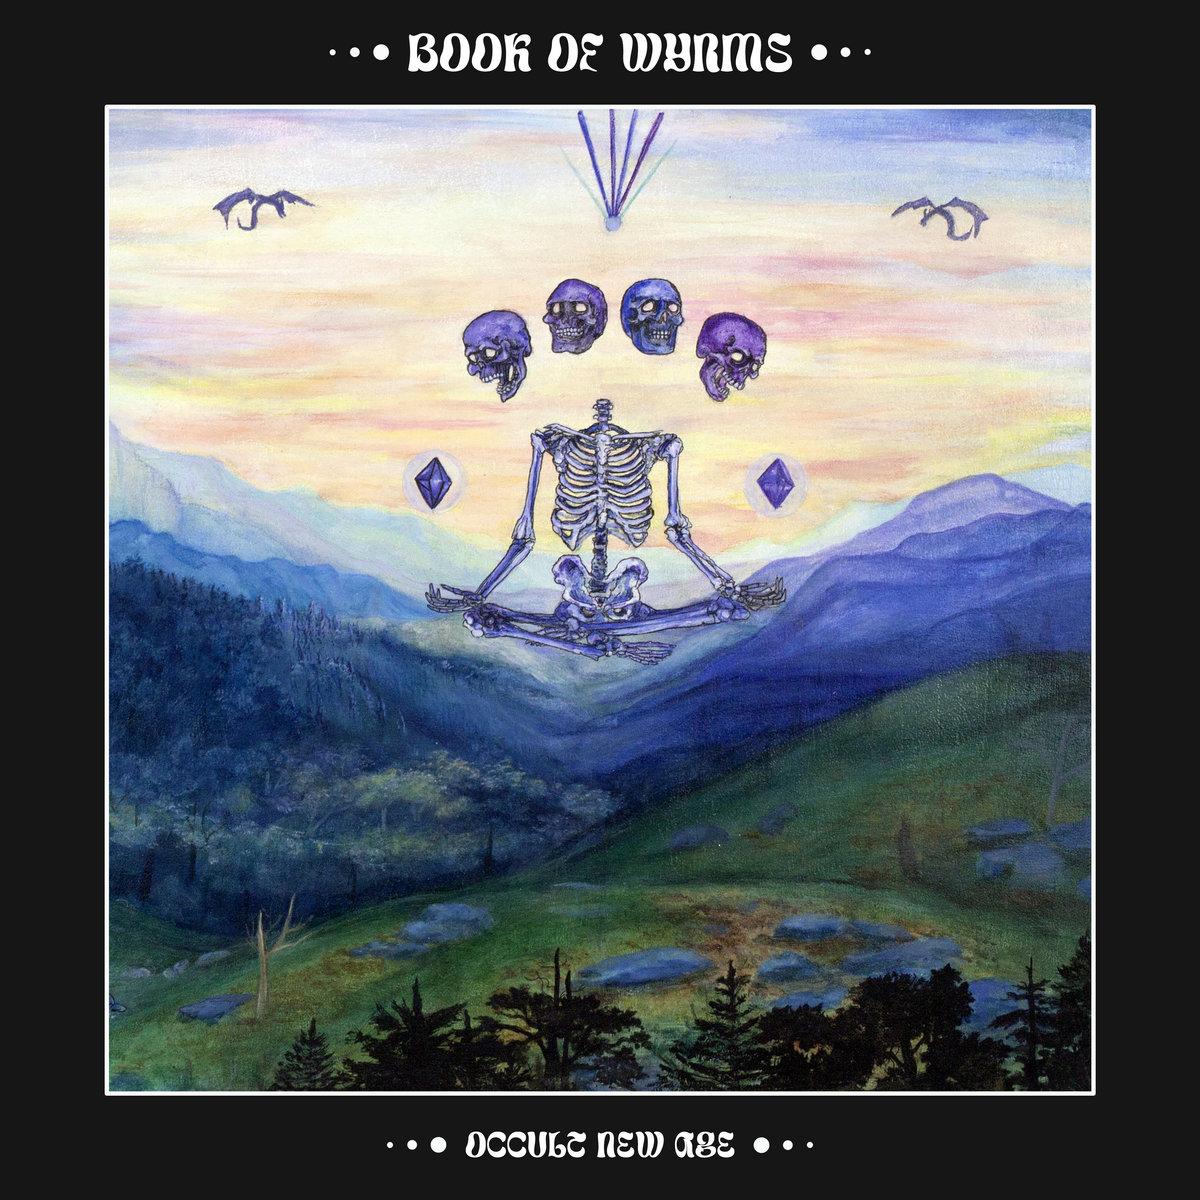 book of wyrms occult new age